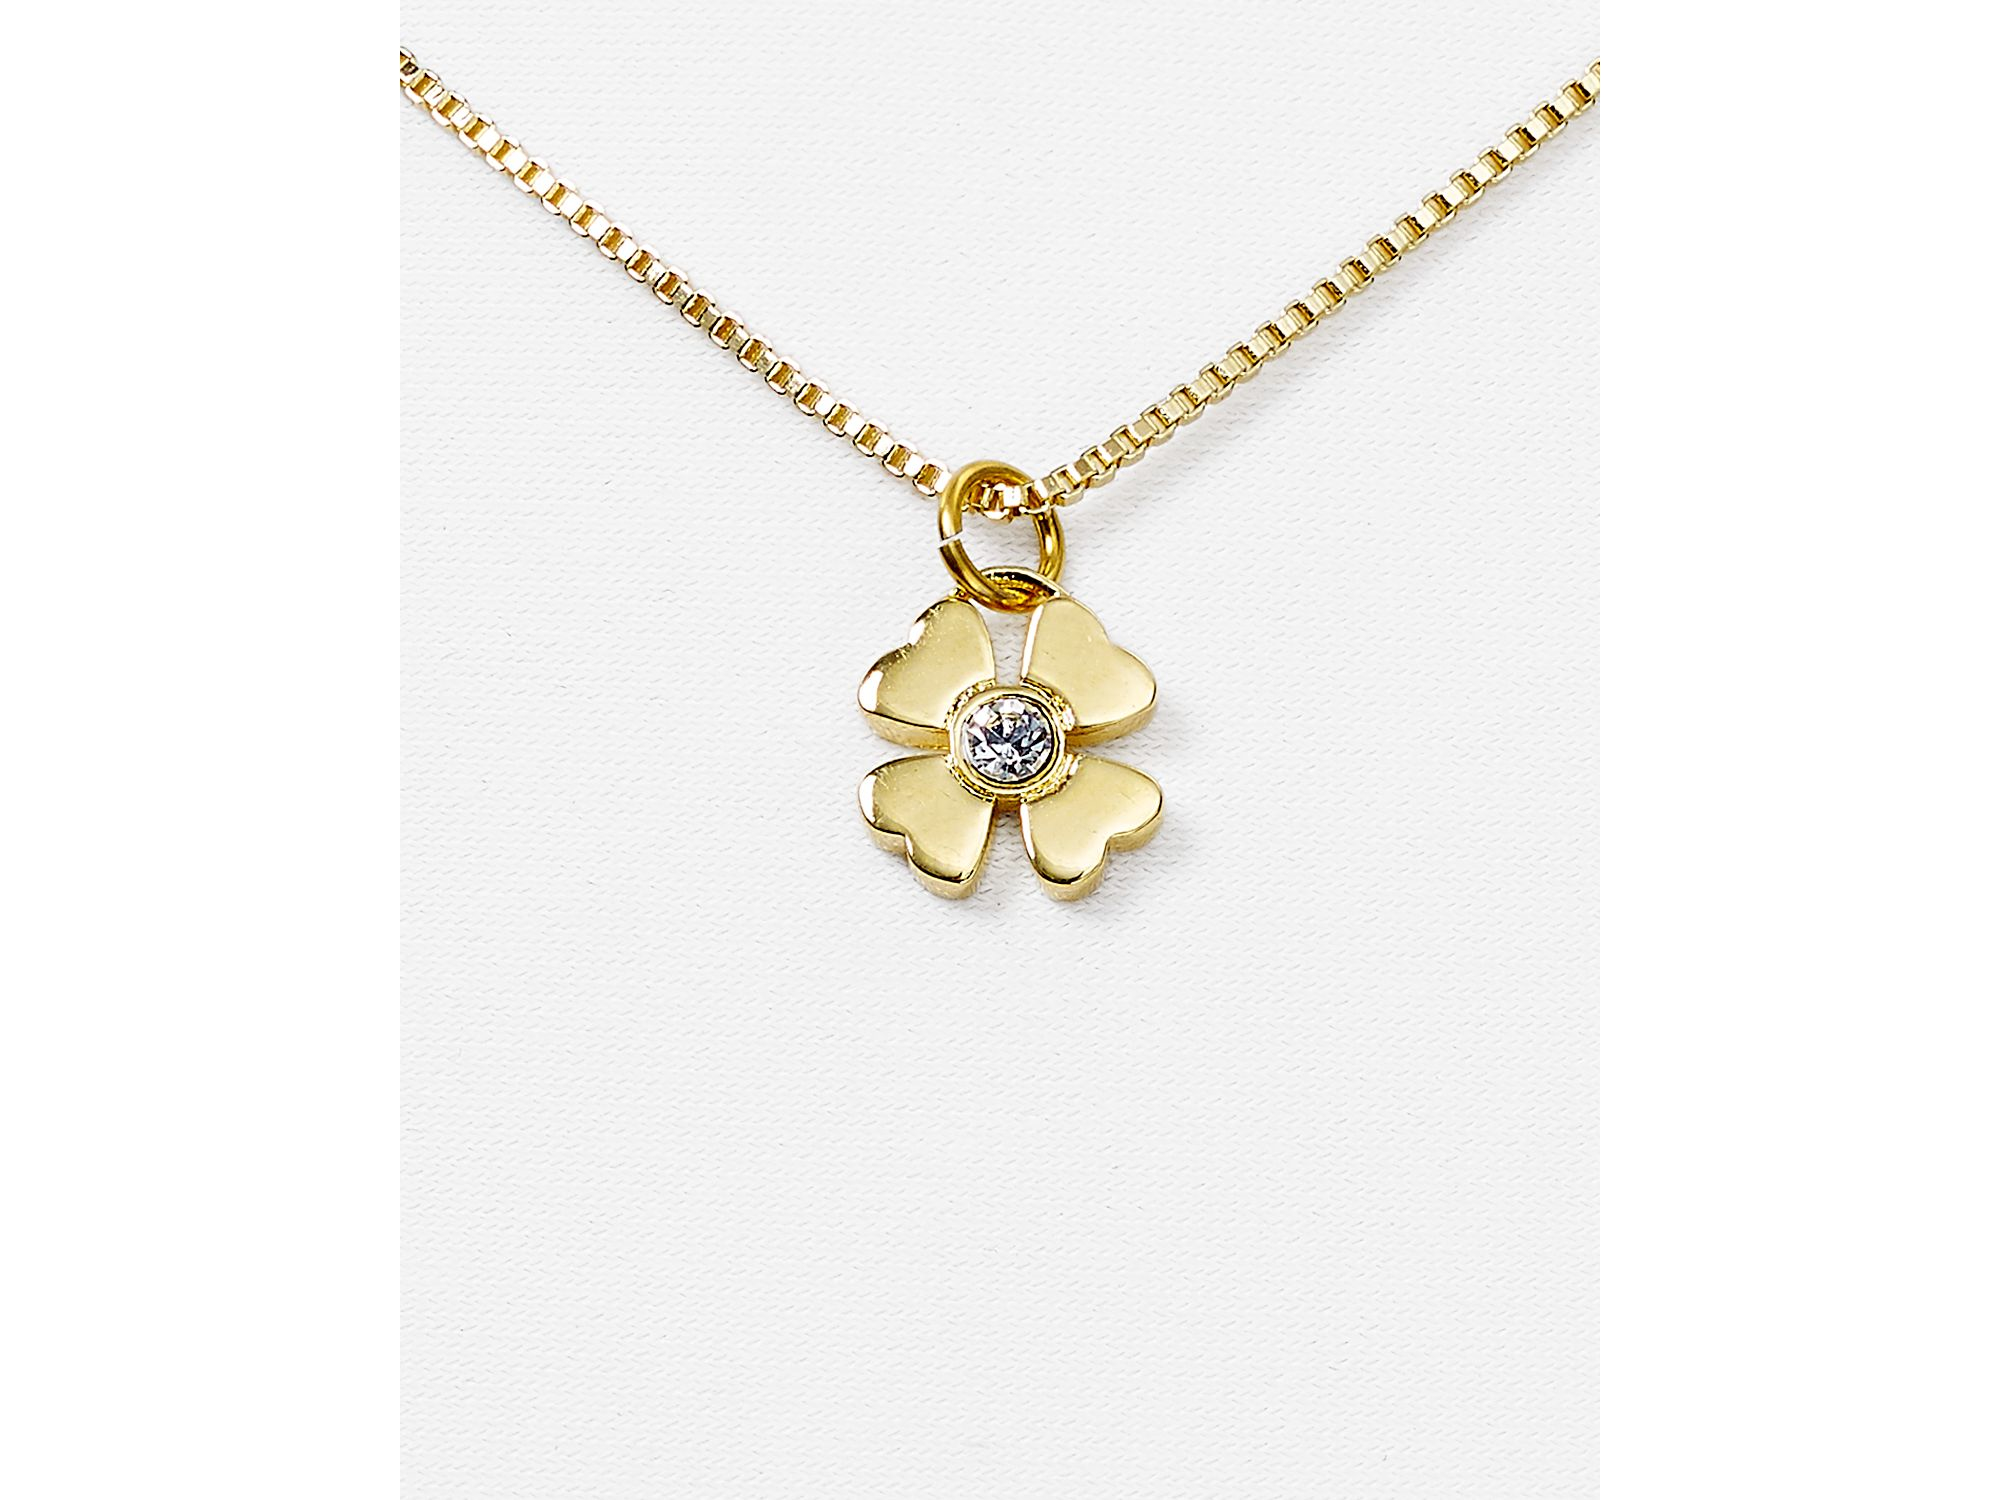 four amp image leaf cz silver clover necklace nomination sterling gioie